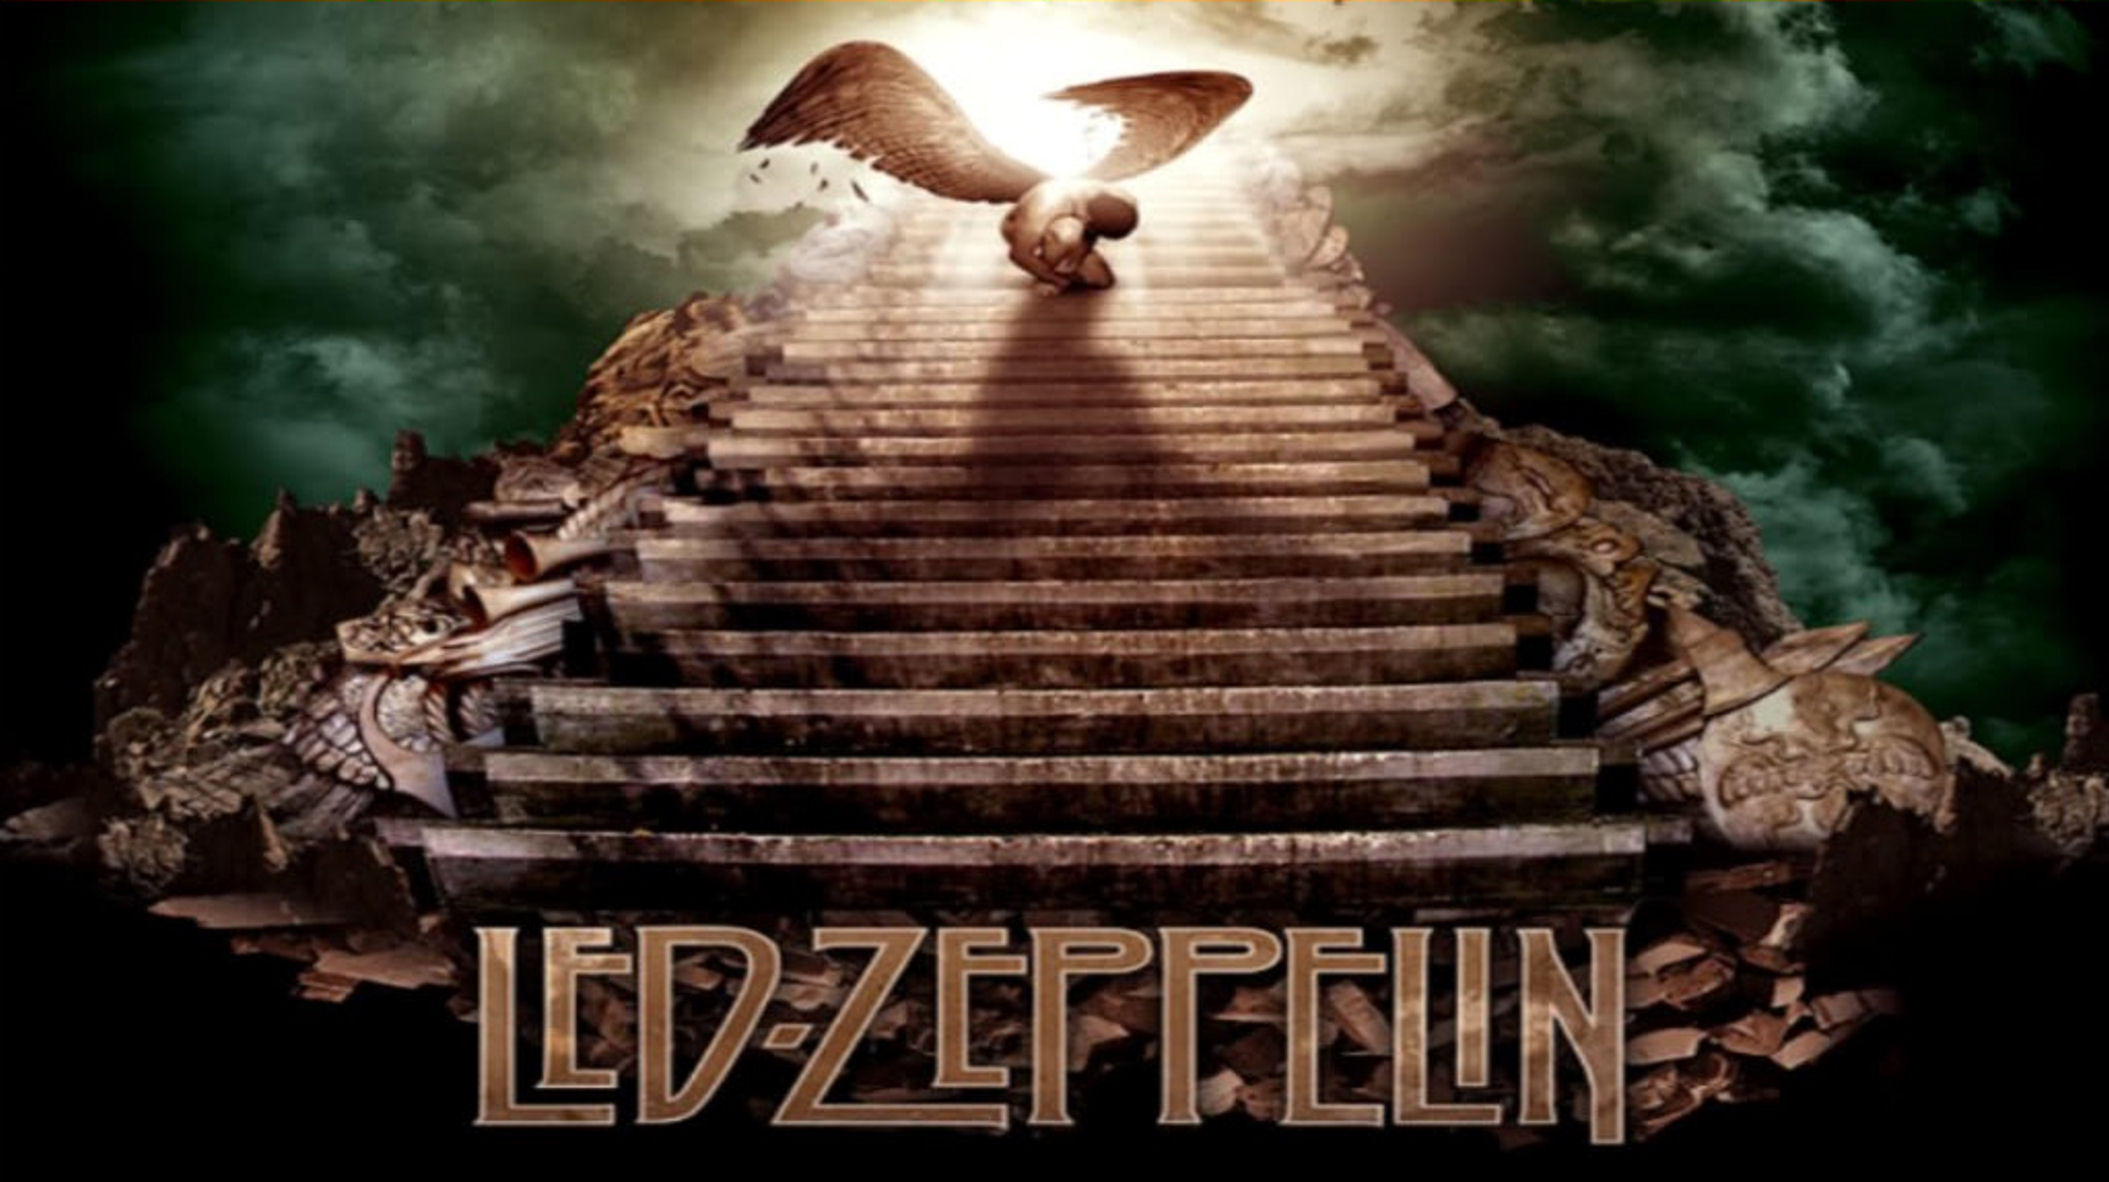 Led Zeppelin Full Hd Wallpaper And Background Image 2109x1182 Id 194373